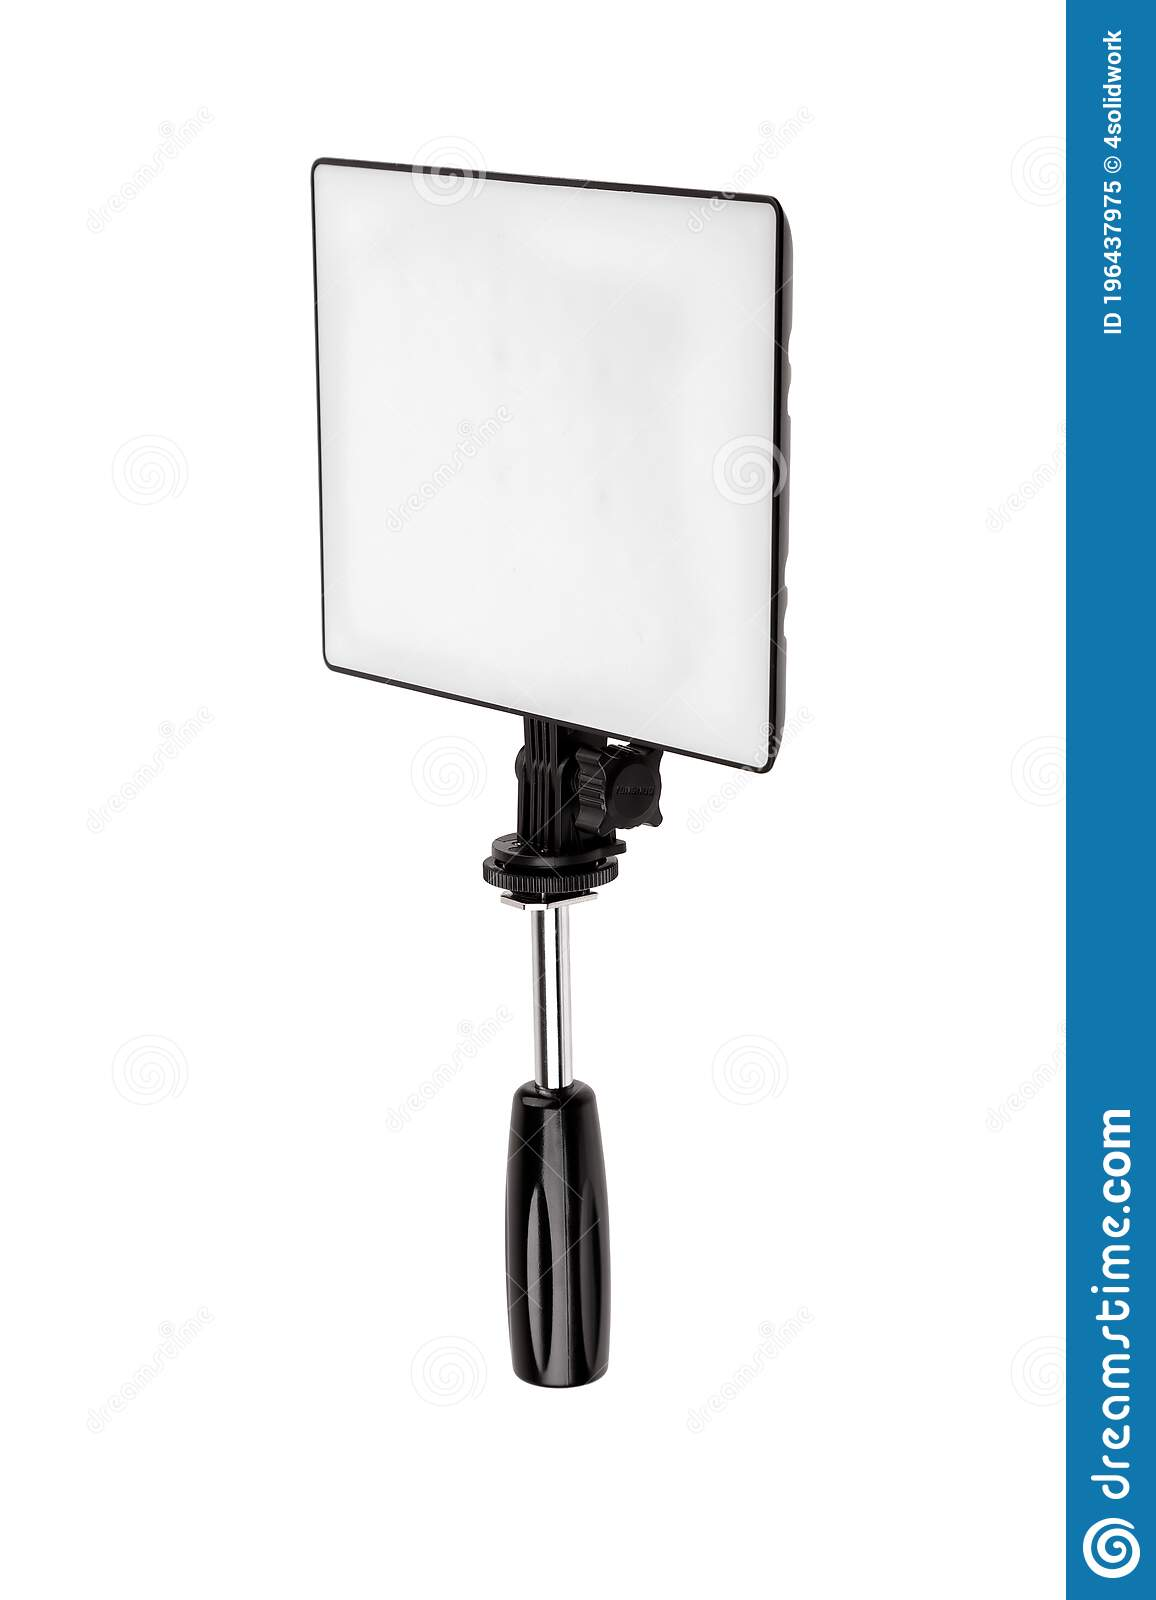 professional lighting equipment for video production isolated on white portable video light for filming video and video blogging stock image image of device camera 196437975